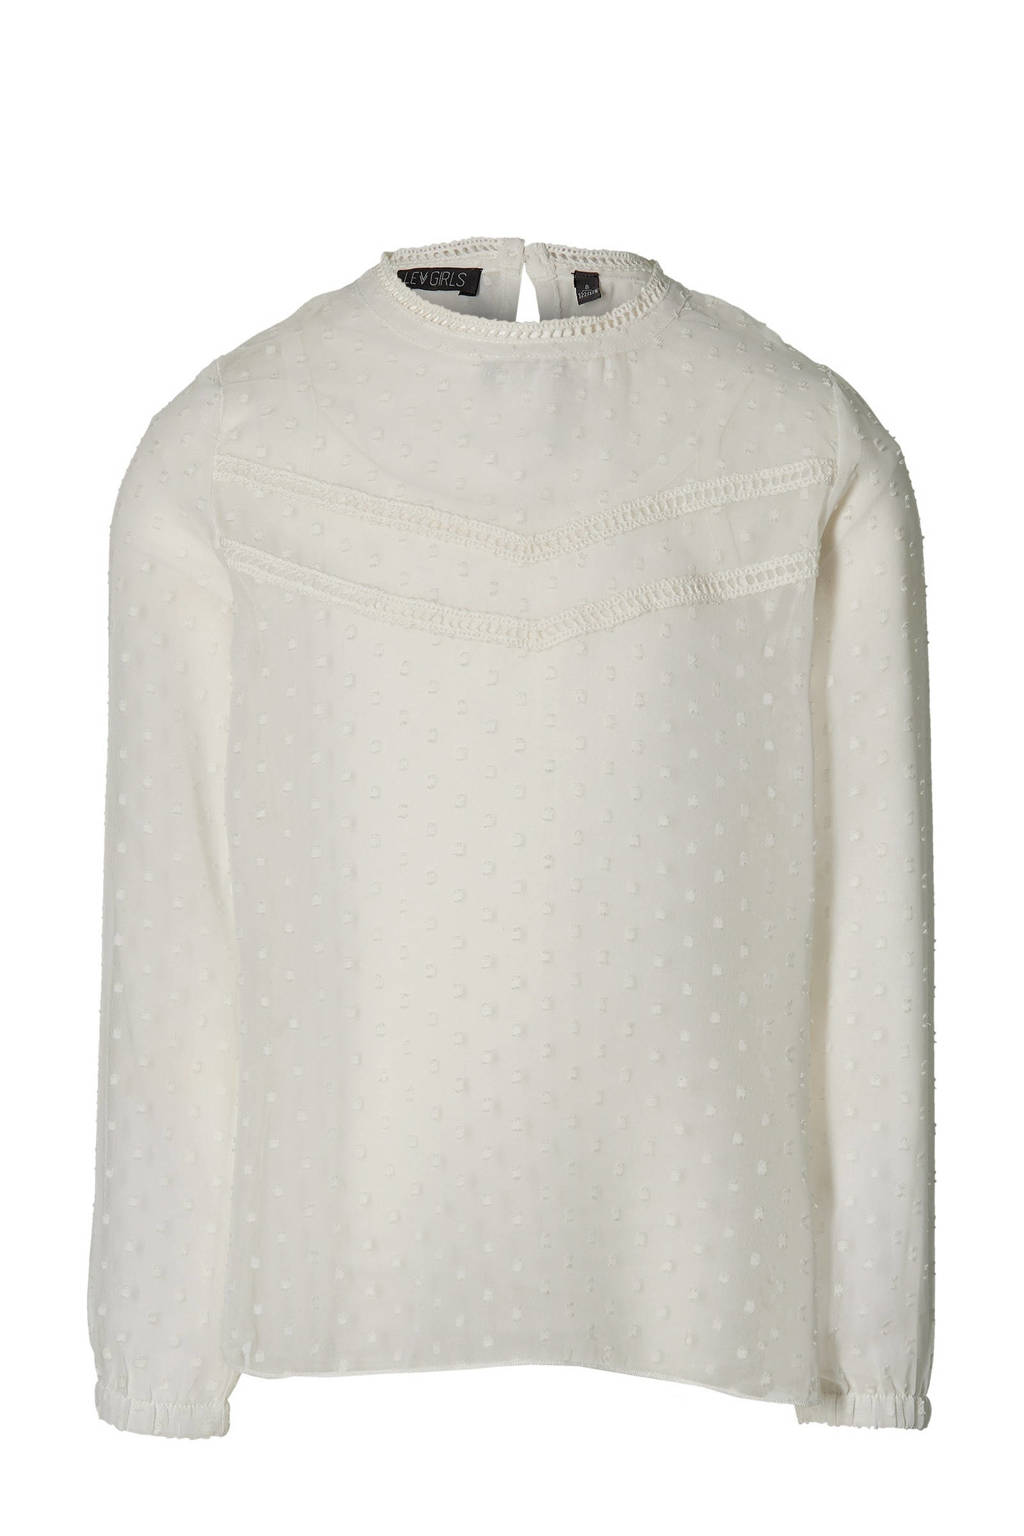 LEVV Girls semi-transparante top met all over print offwhite, Offwhite